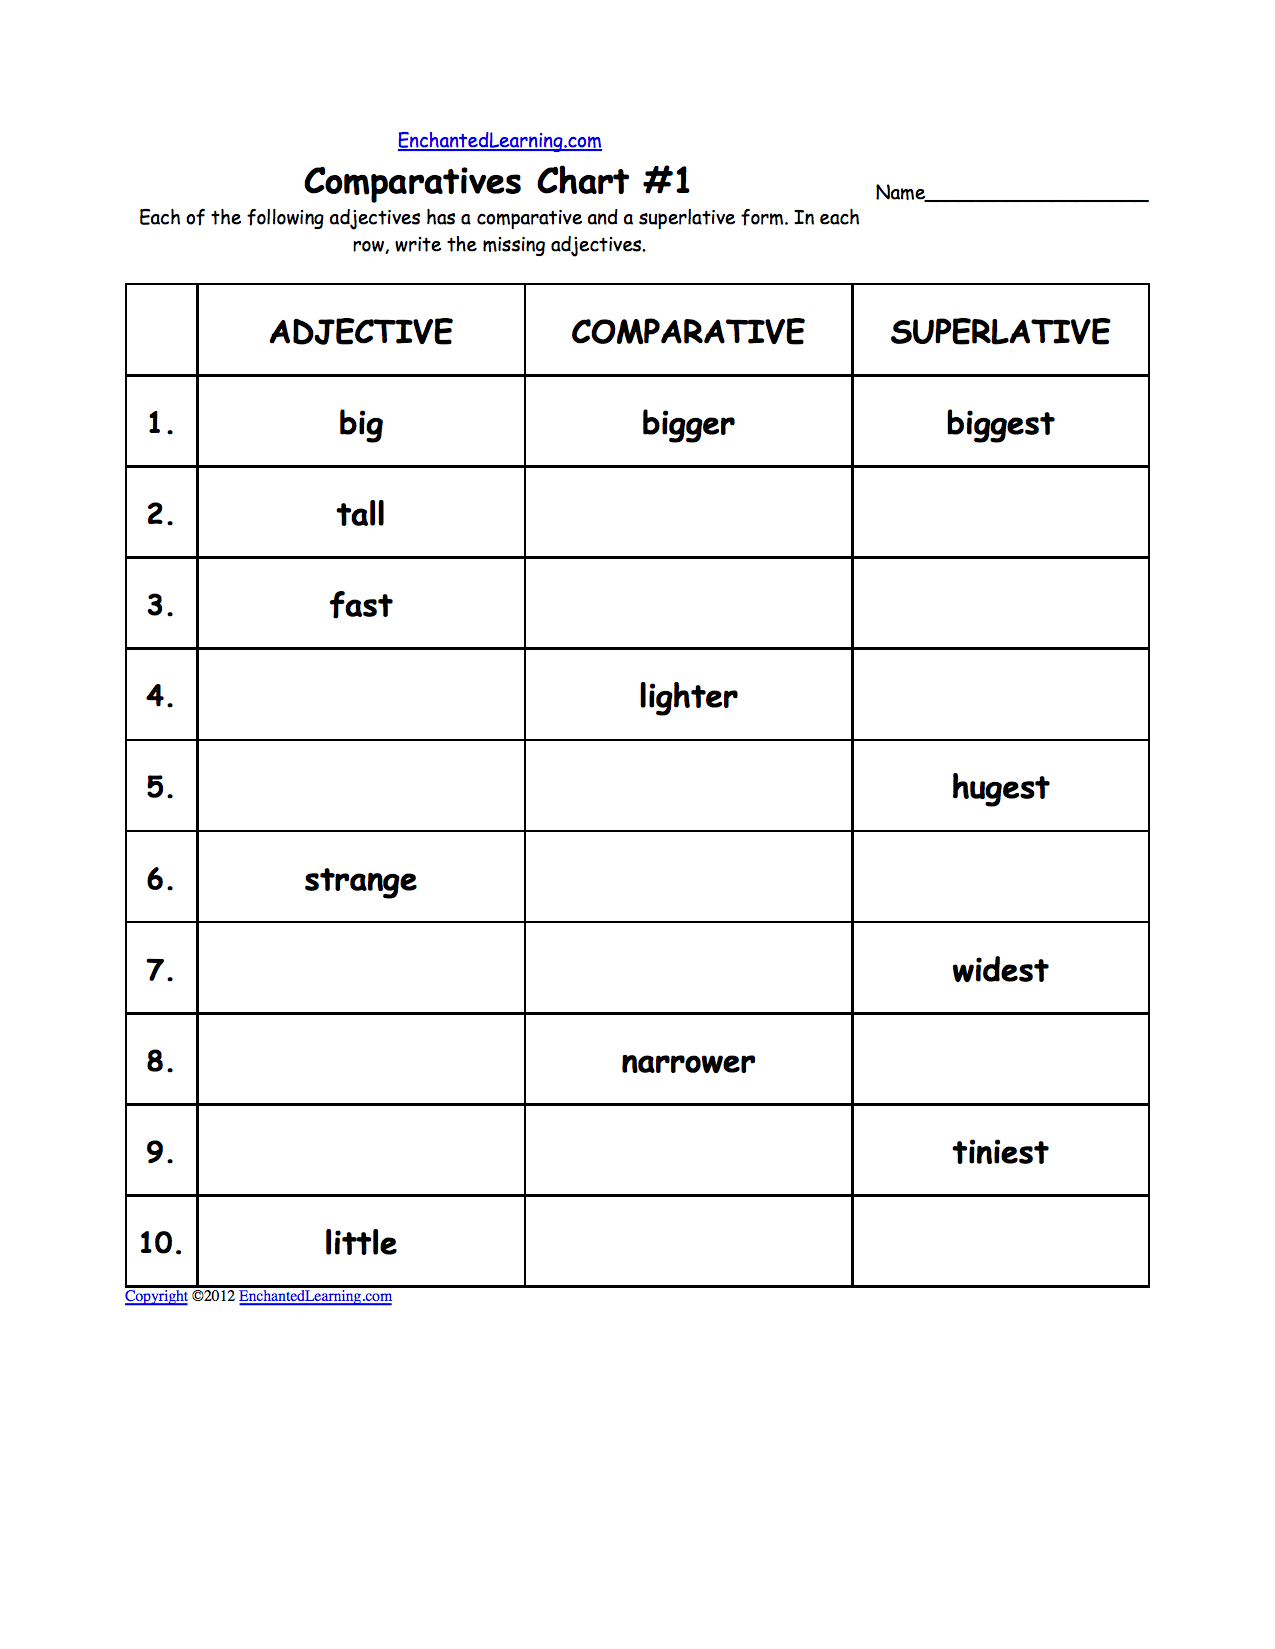 worksheet Comparative Superlative Worksheet comparative and superlative adjectives worksheet printout enchantedlearning com